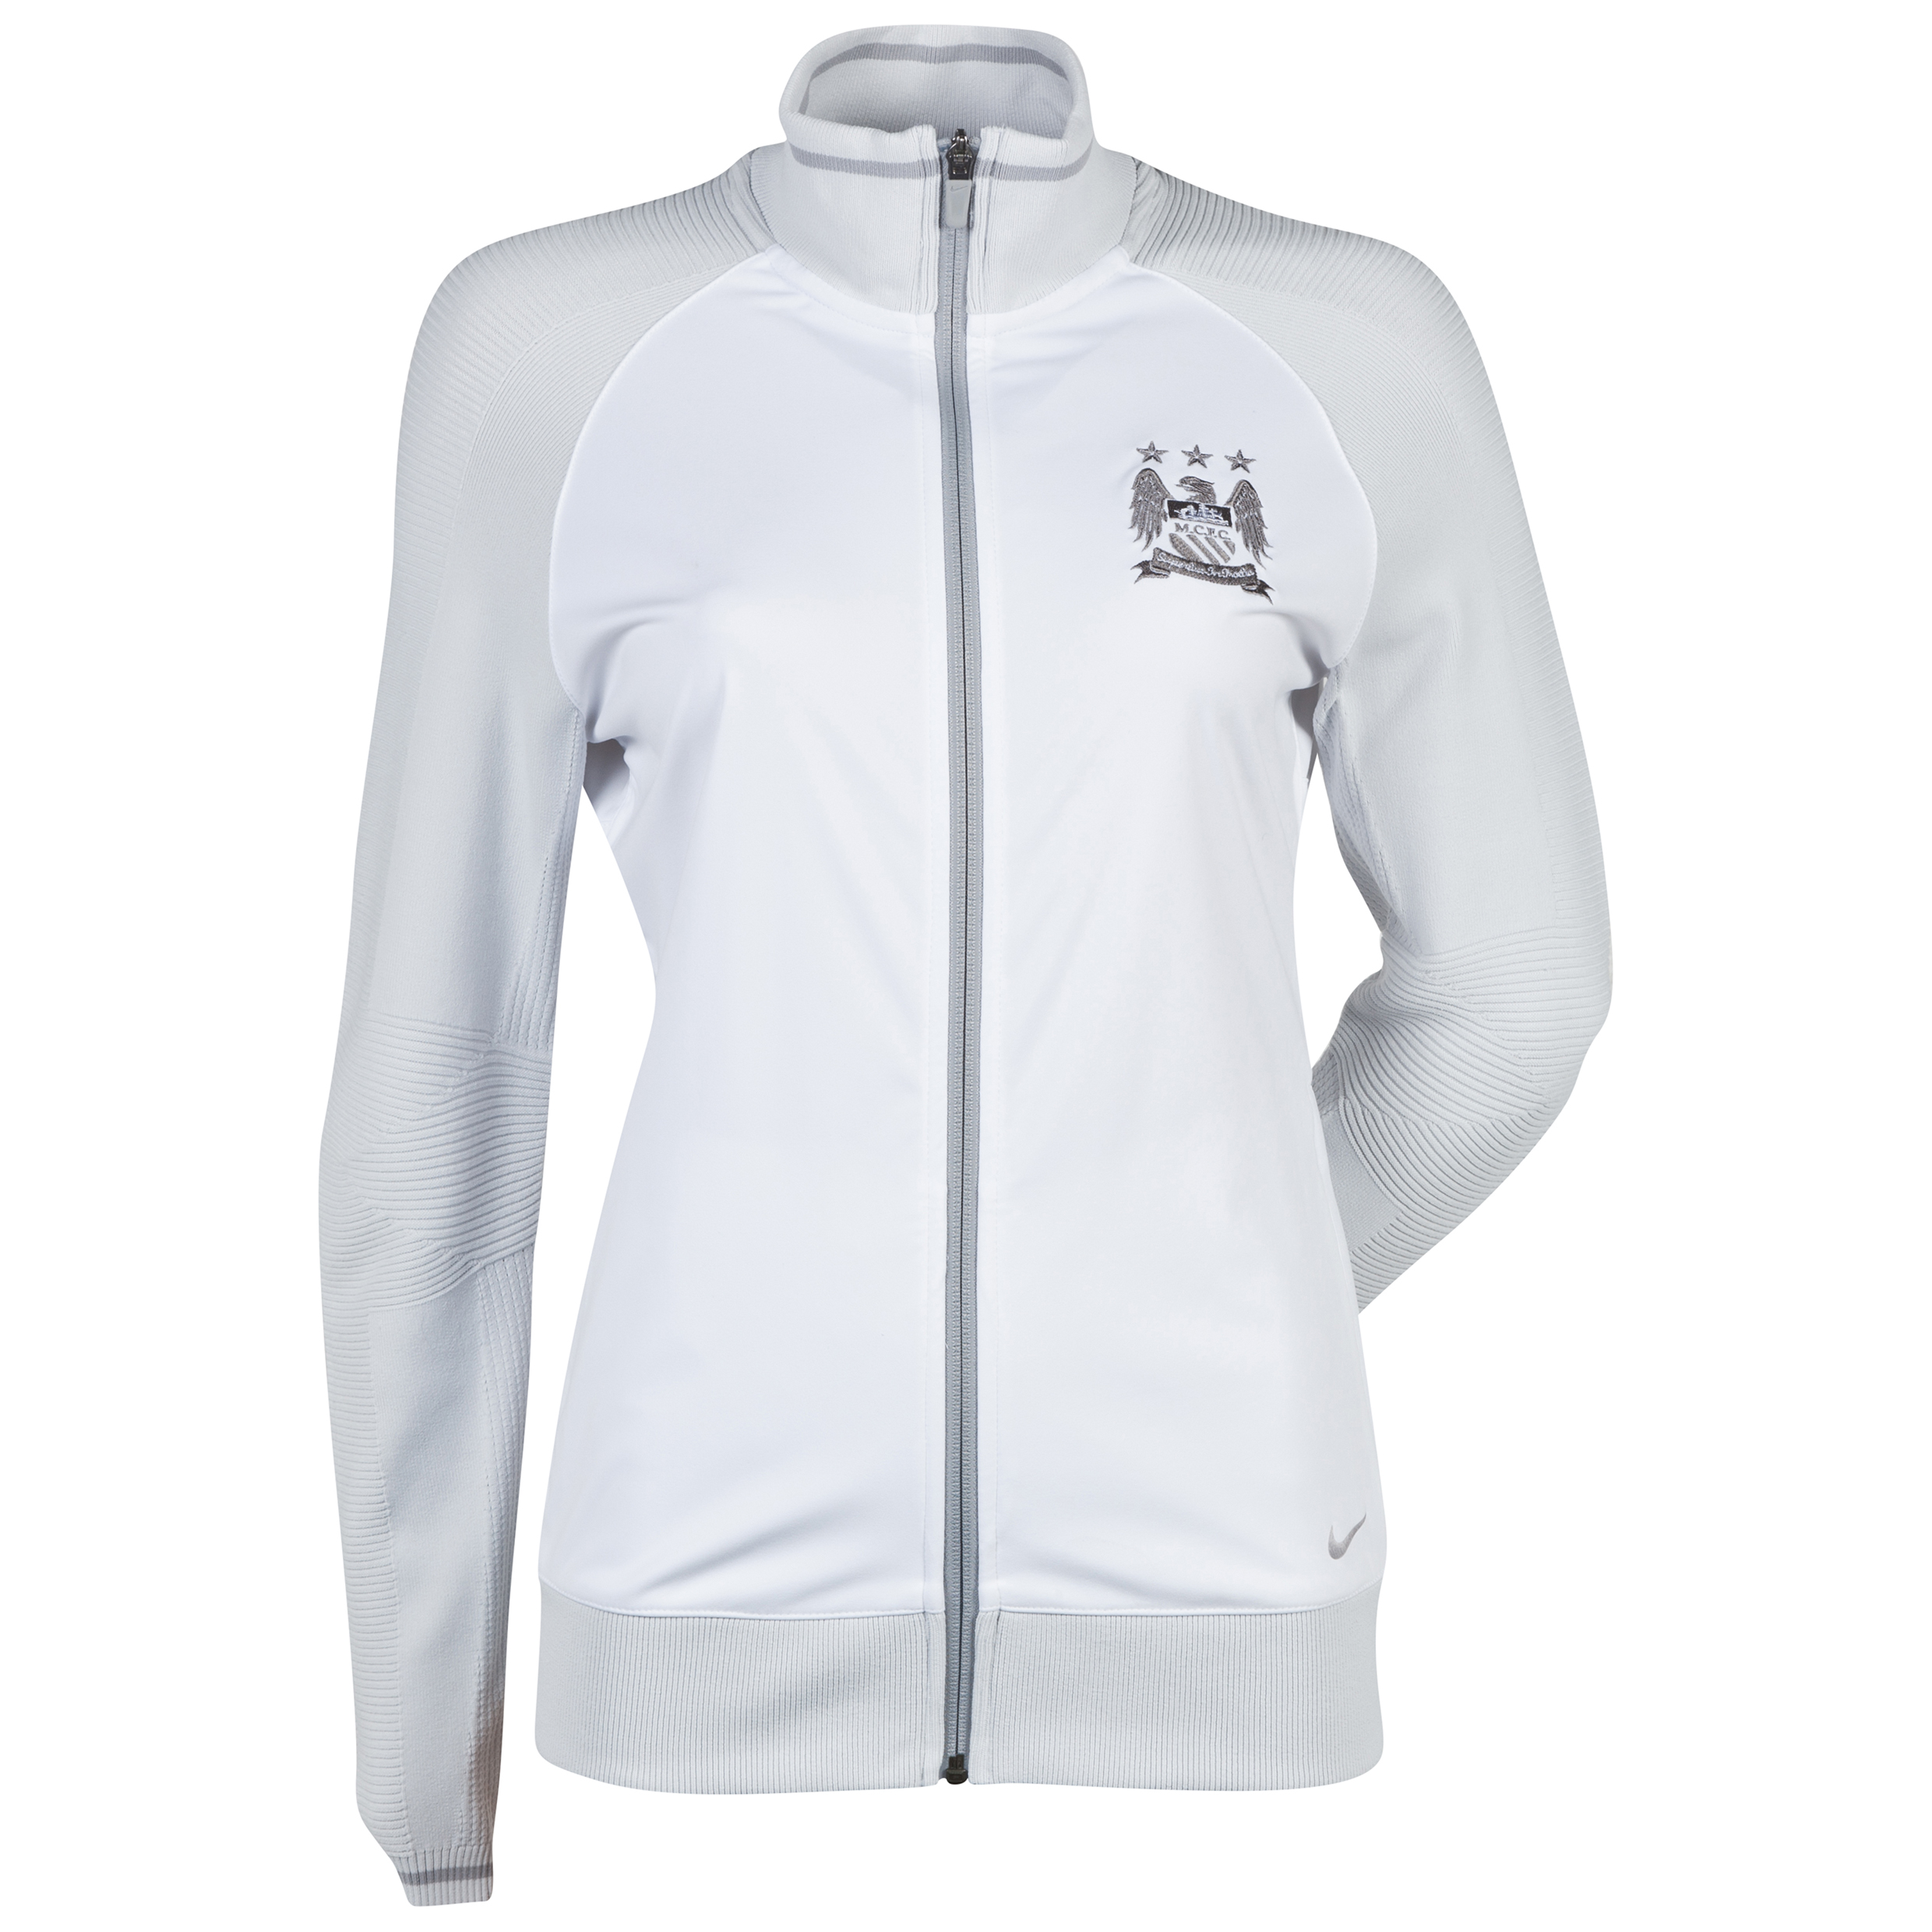 Manchester City Nike Full Zip Cover Up Jacket - Womens White